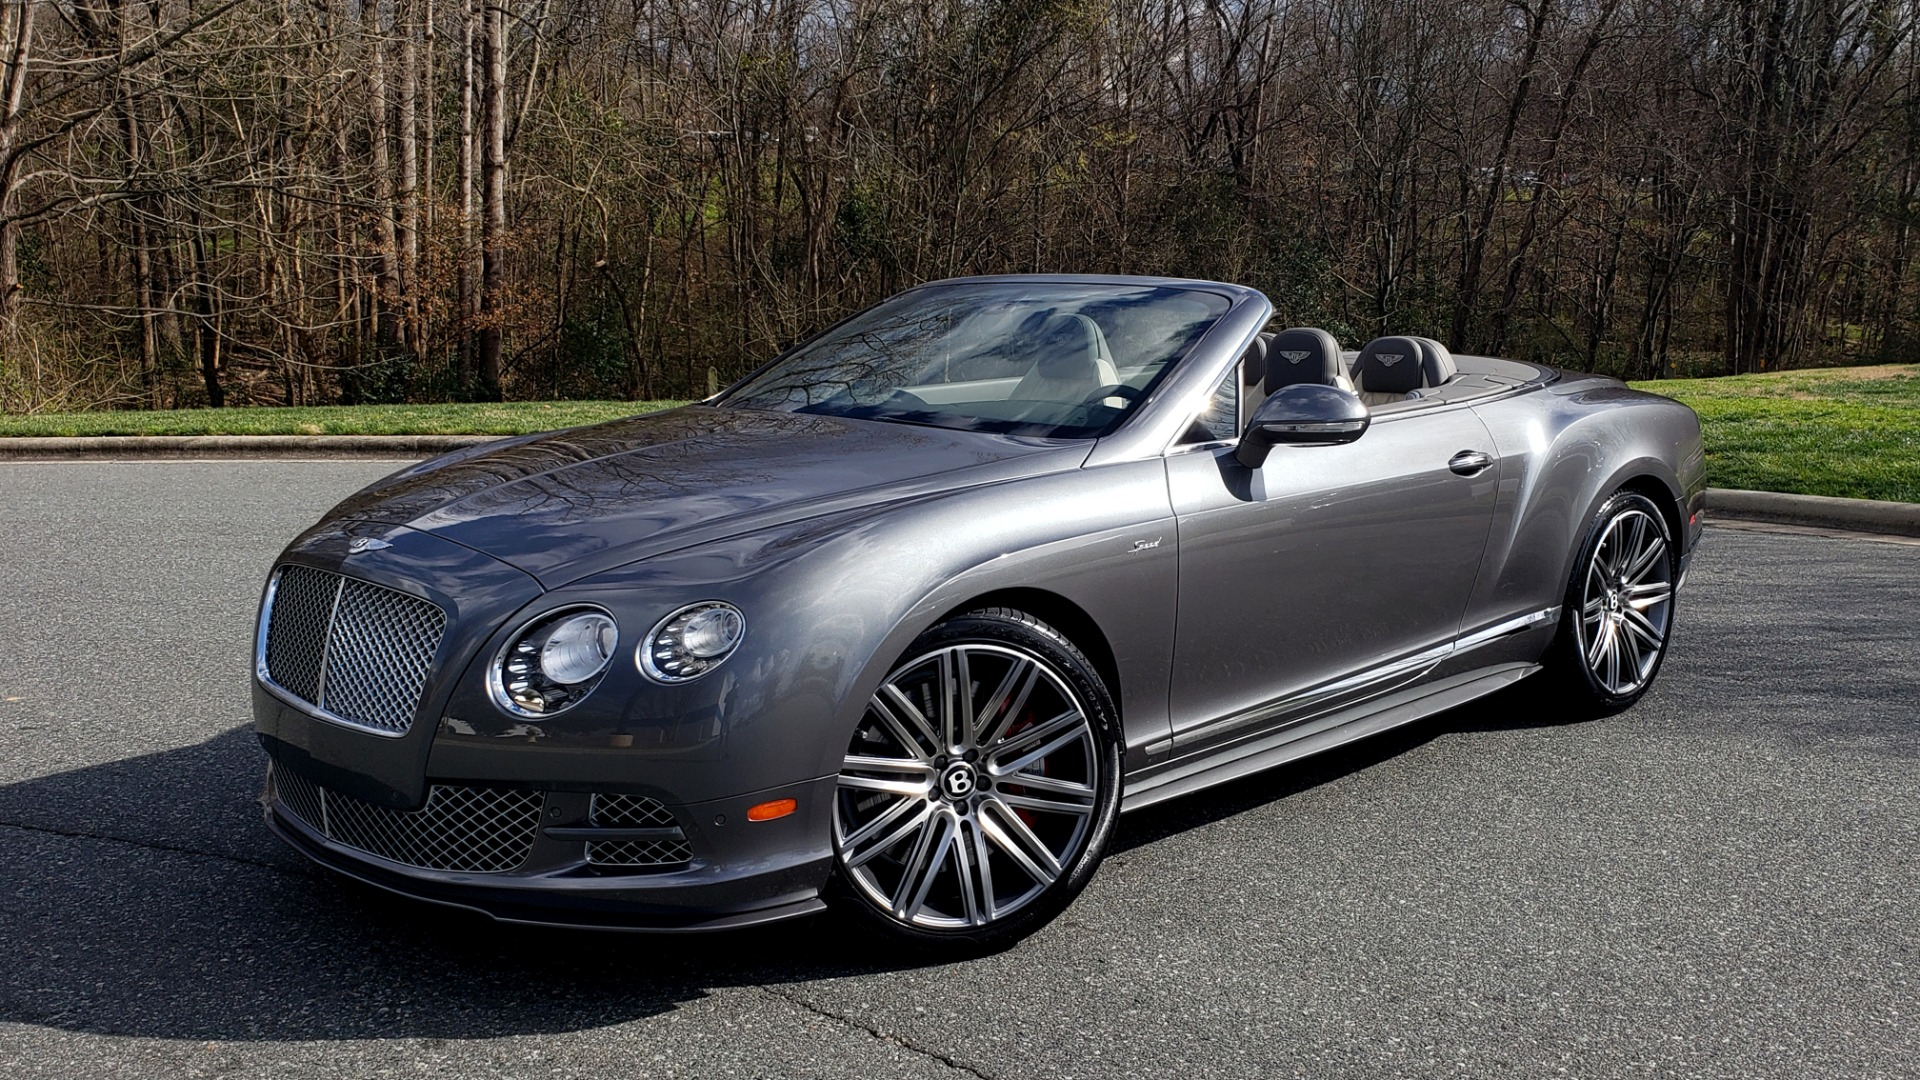 Used 2015 Bentley CONTINENTAL SPEED CONV / 6.0L W12 / NAV / VENT SEATS / REARVIEW for sale Sold at Formula Imports in Charlotte NC 28227 1